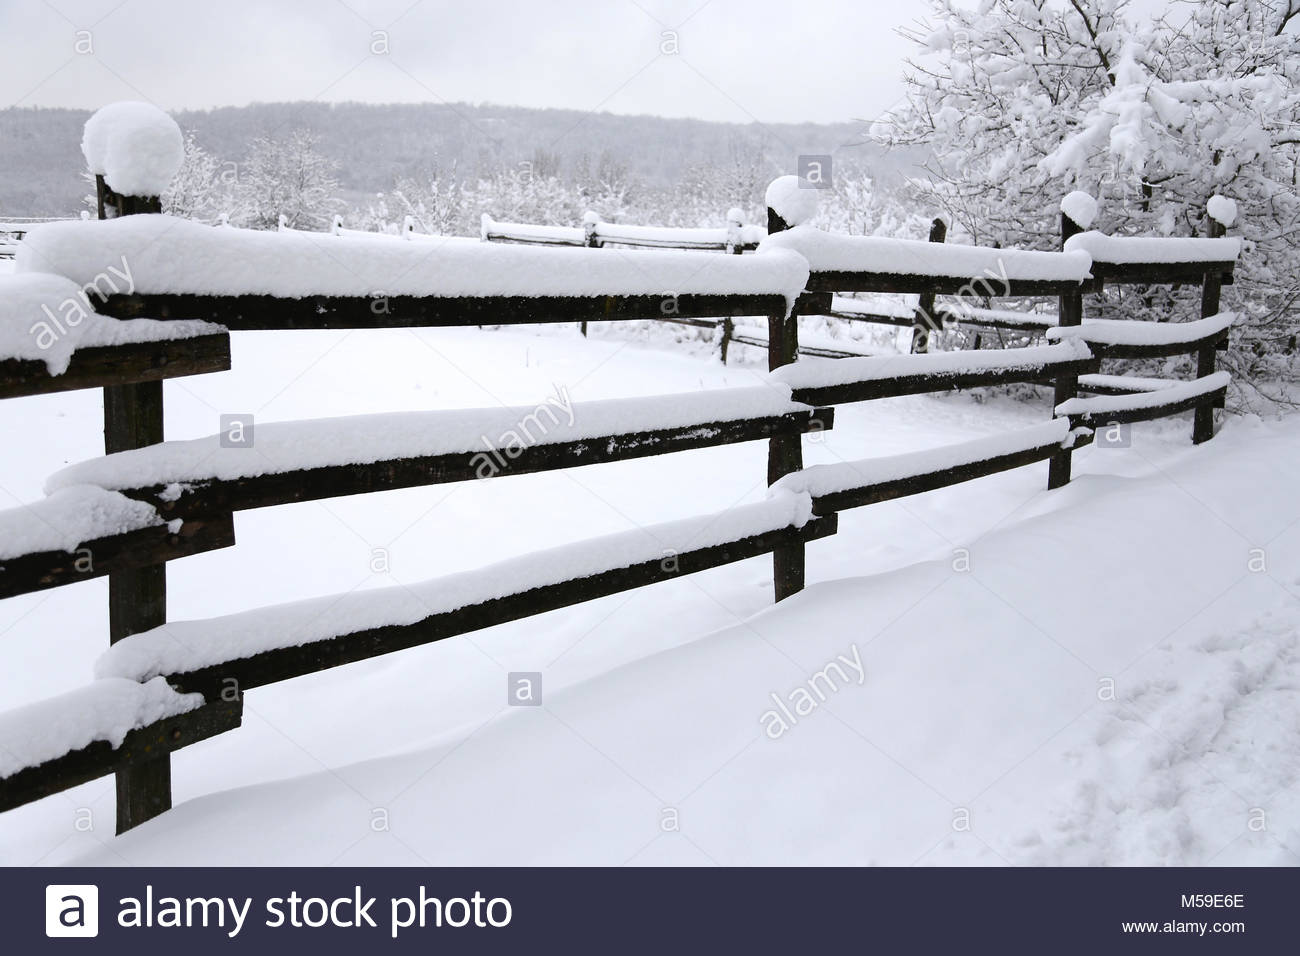 Snowy corral fence wintertime as a background Stock Photo 1300x956